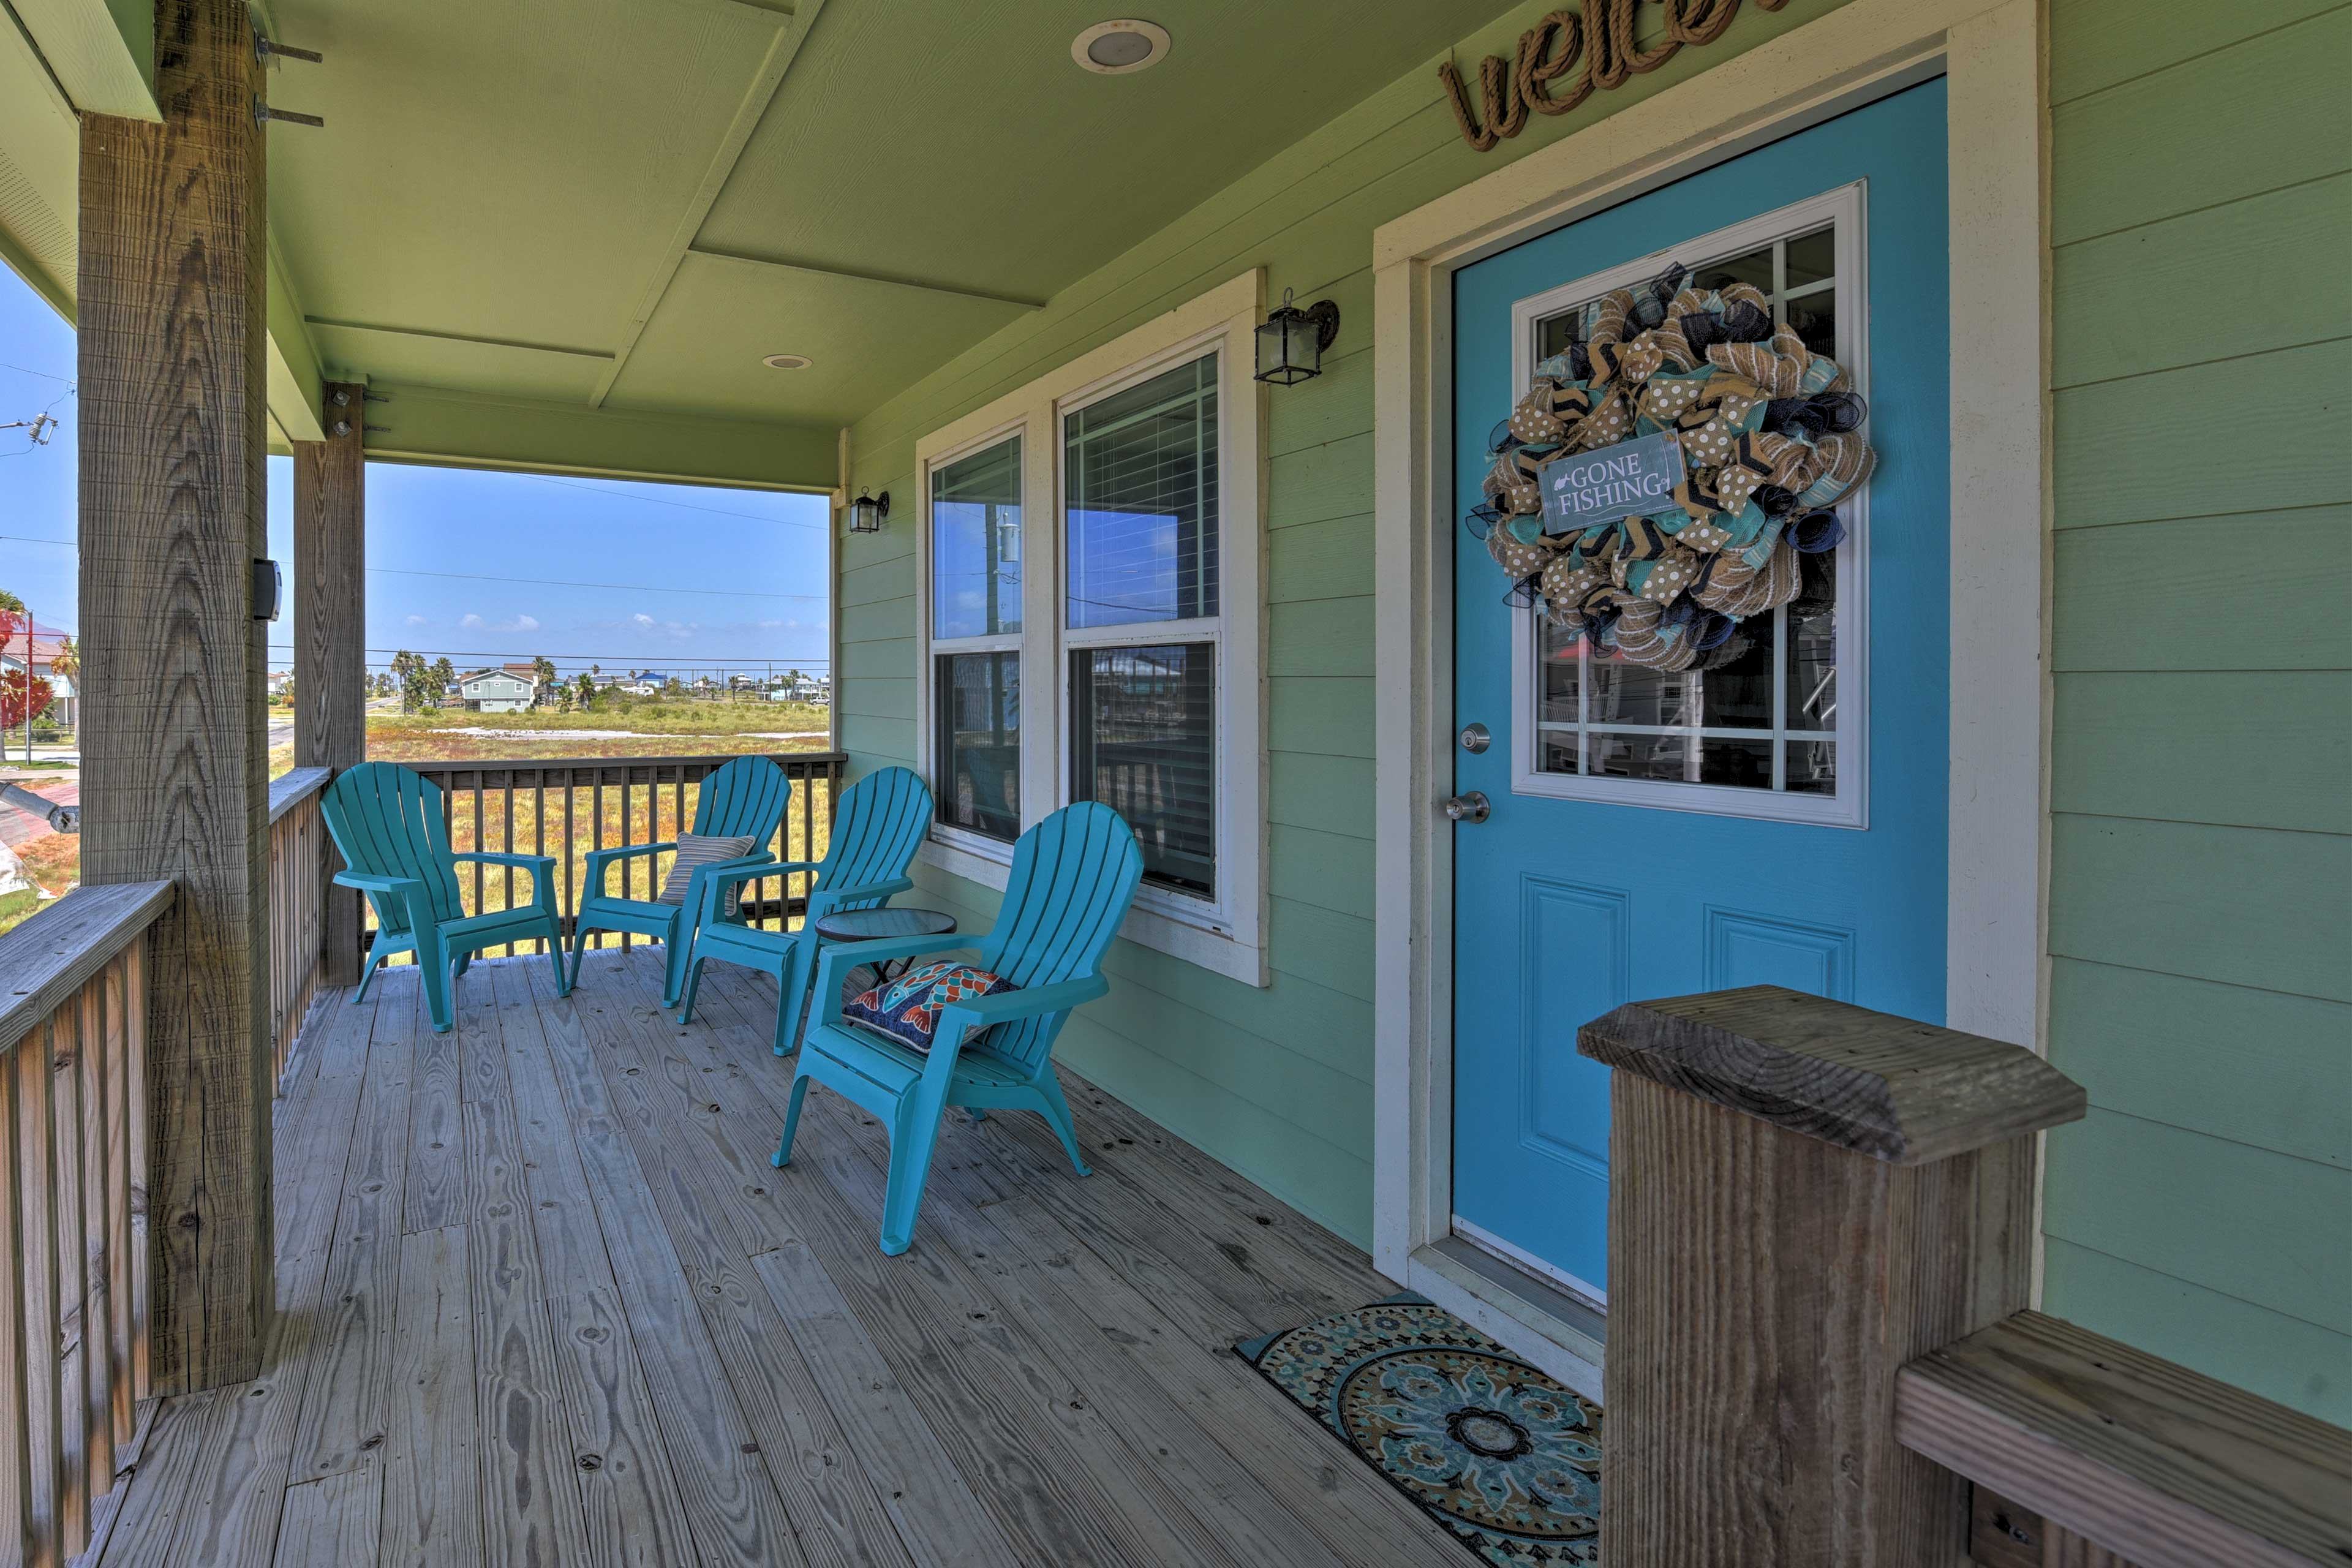 Embrace your surroundings over a cup of coffee on the covered porch.